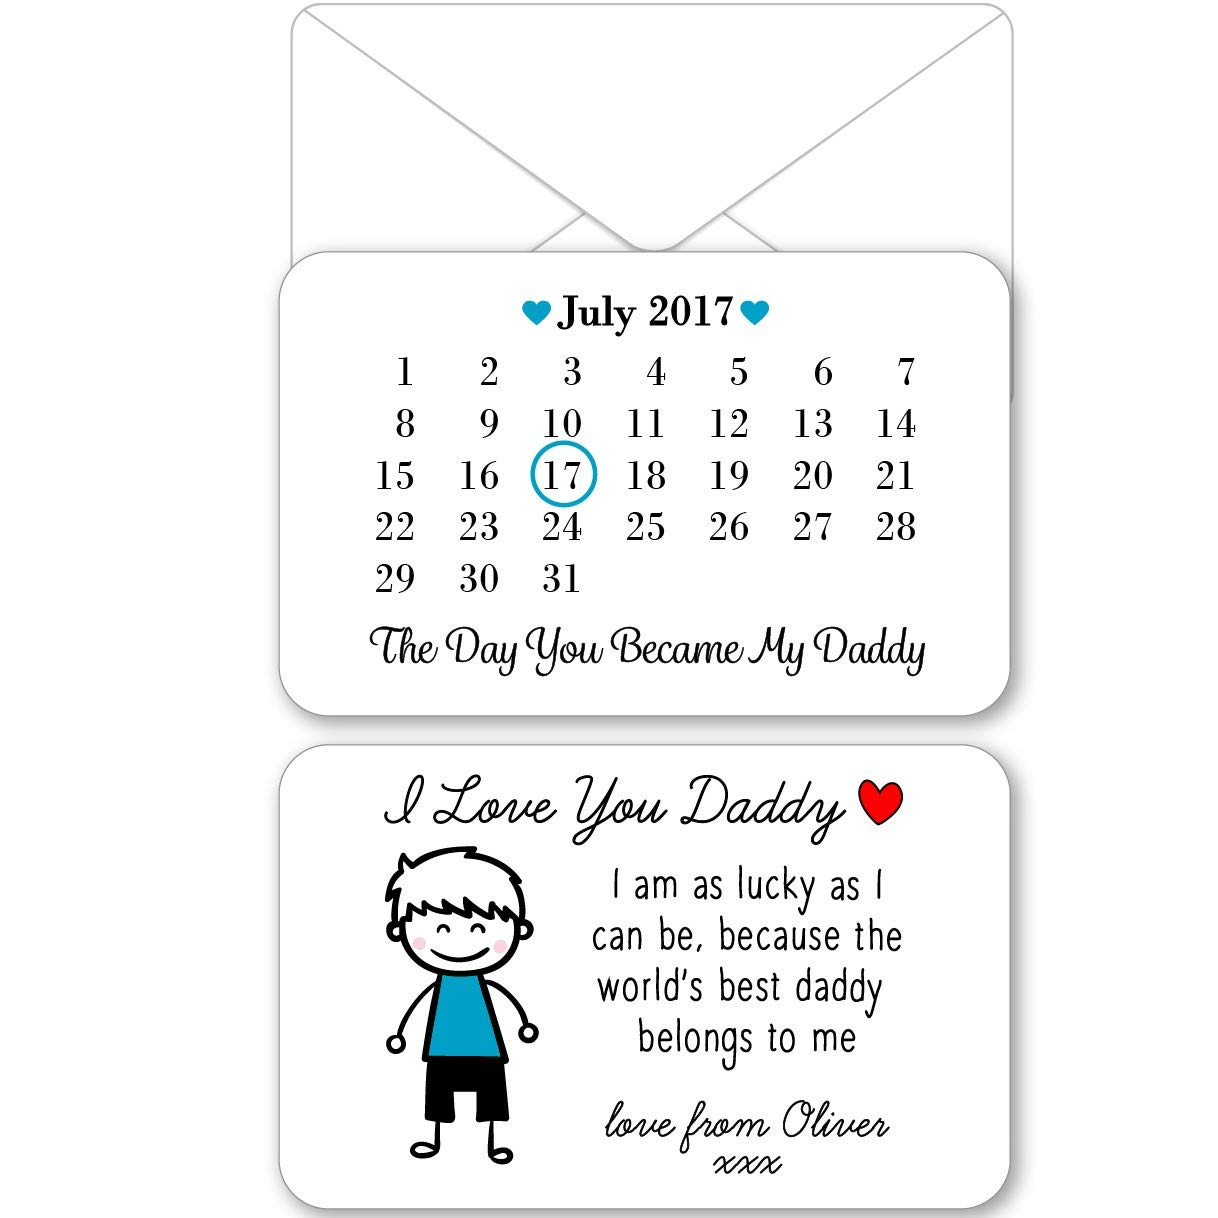 from Boy Metal Wallet Card Personalised Sentimental Keepsake Double Sided Day You Became My Daddy